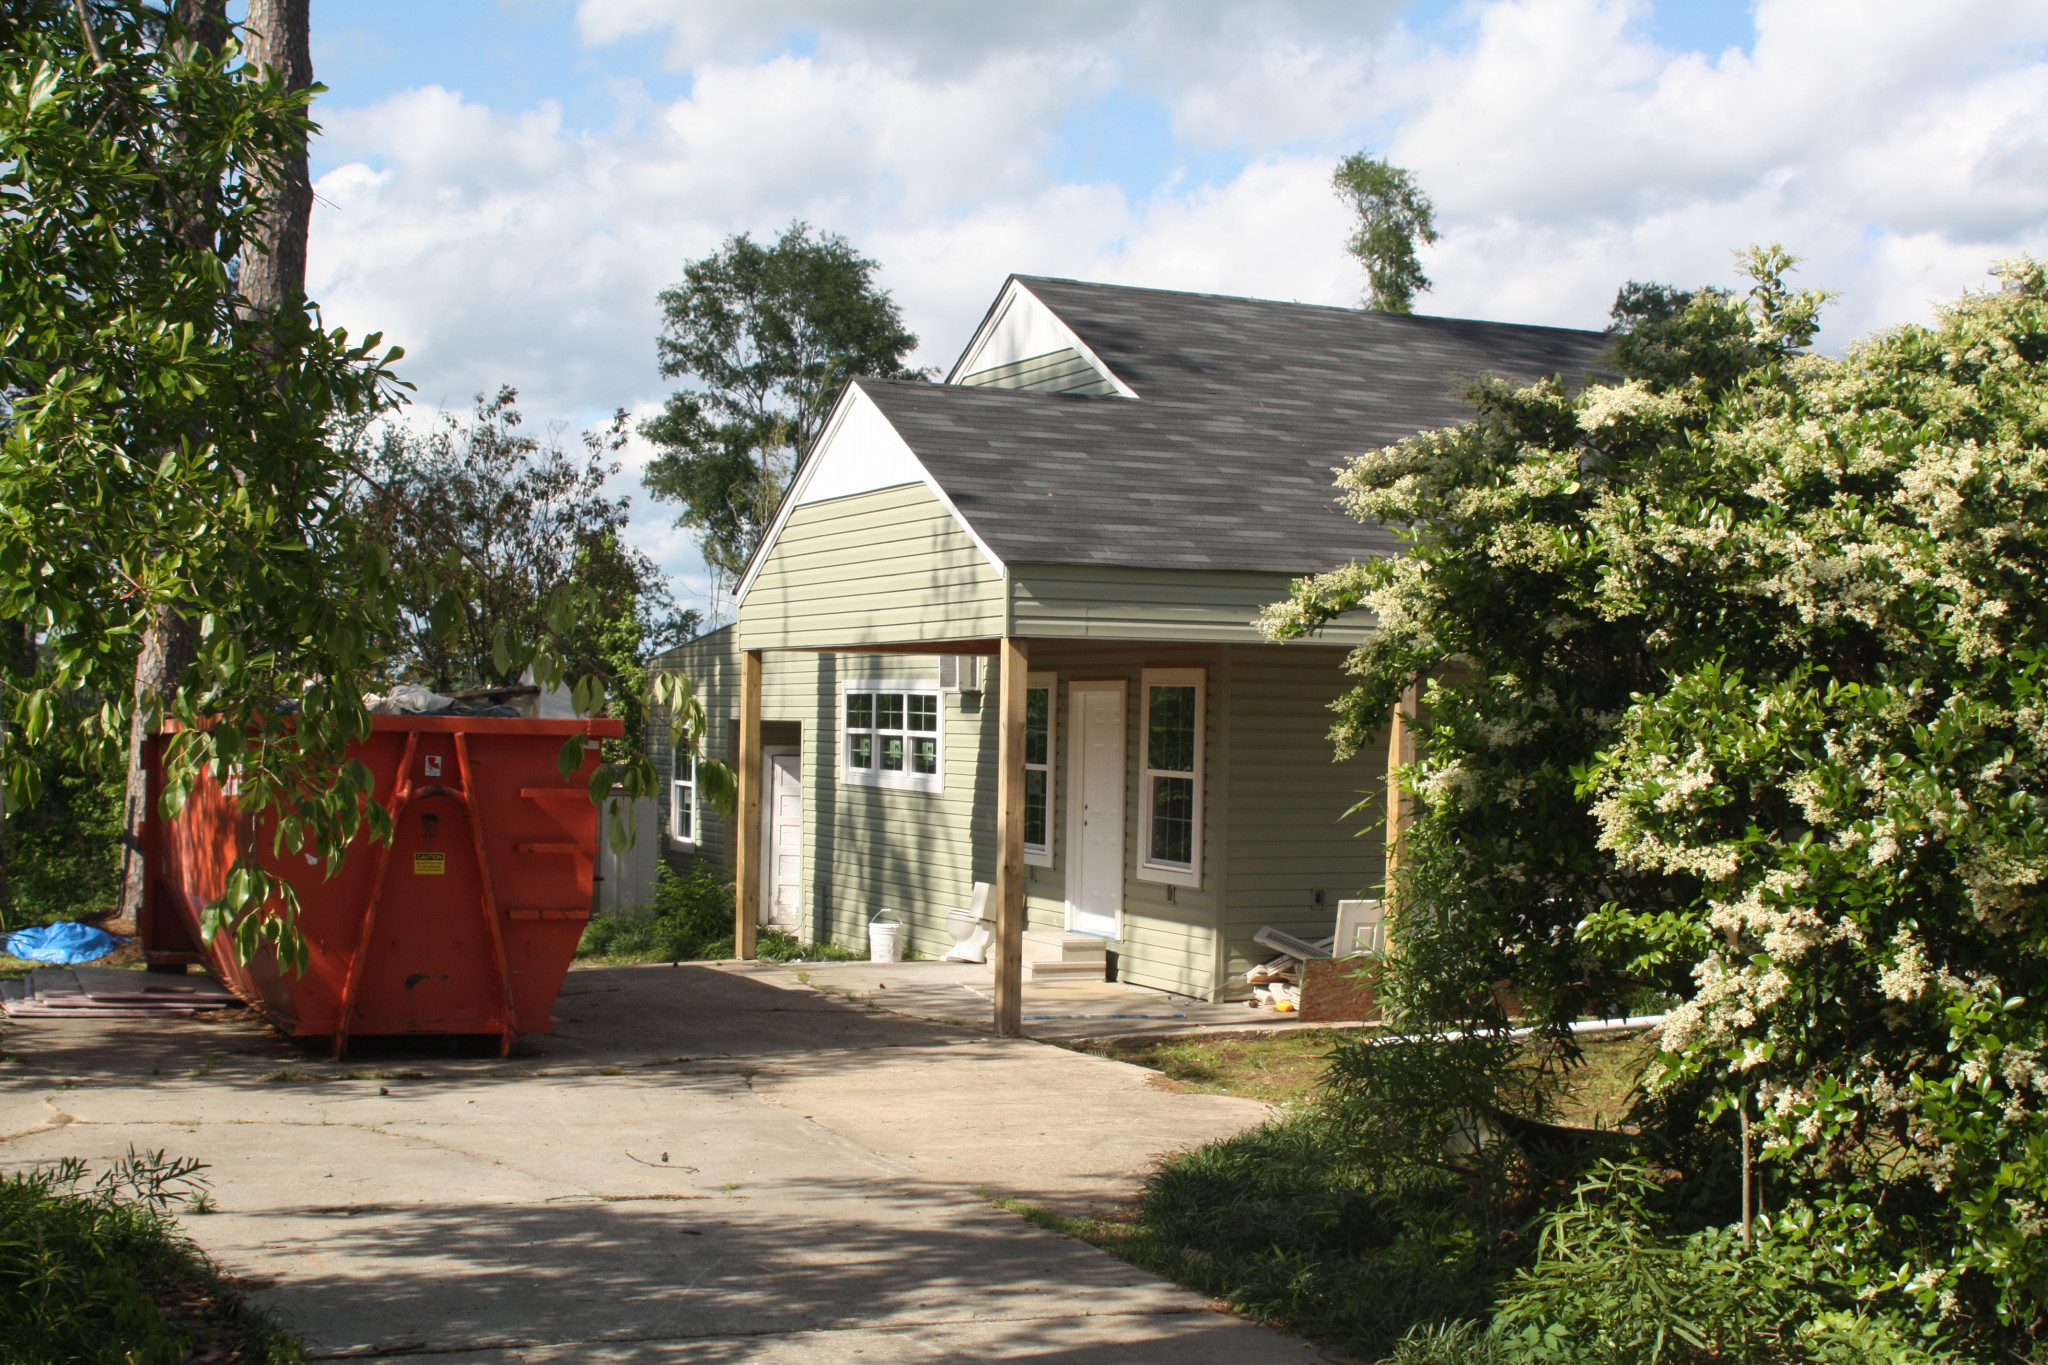 The same Westwood Drive house as it stands now while renovations continue.